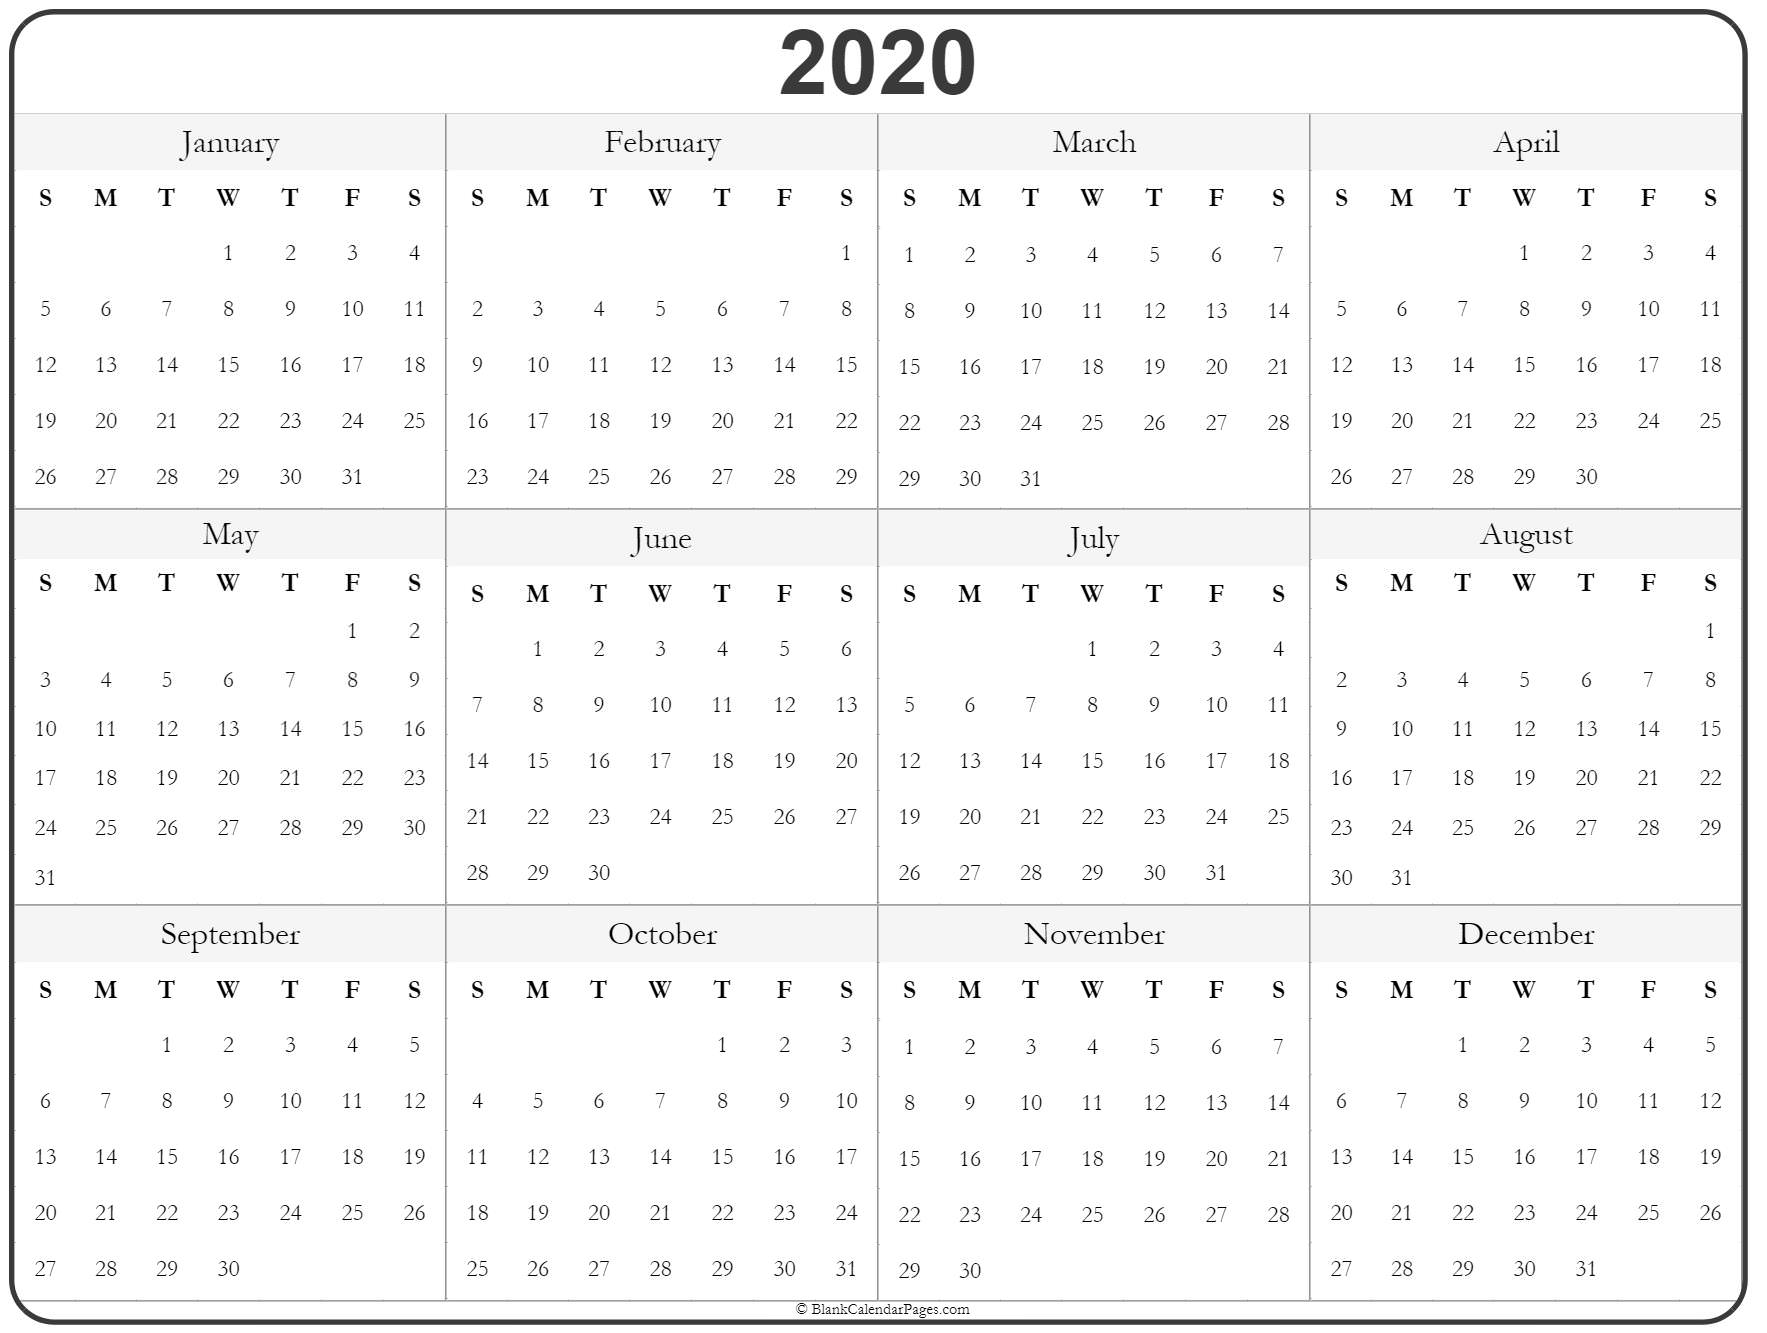 graphic about 2020 Calendar Printable called 2020 calendar year calendar each year printable